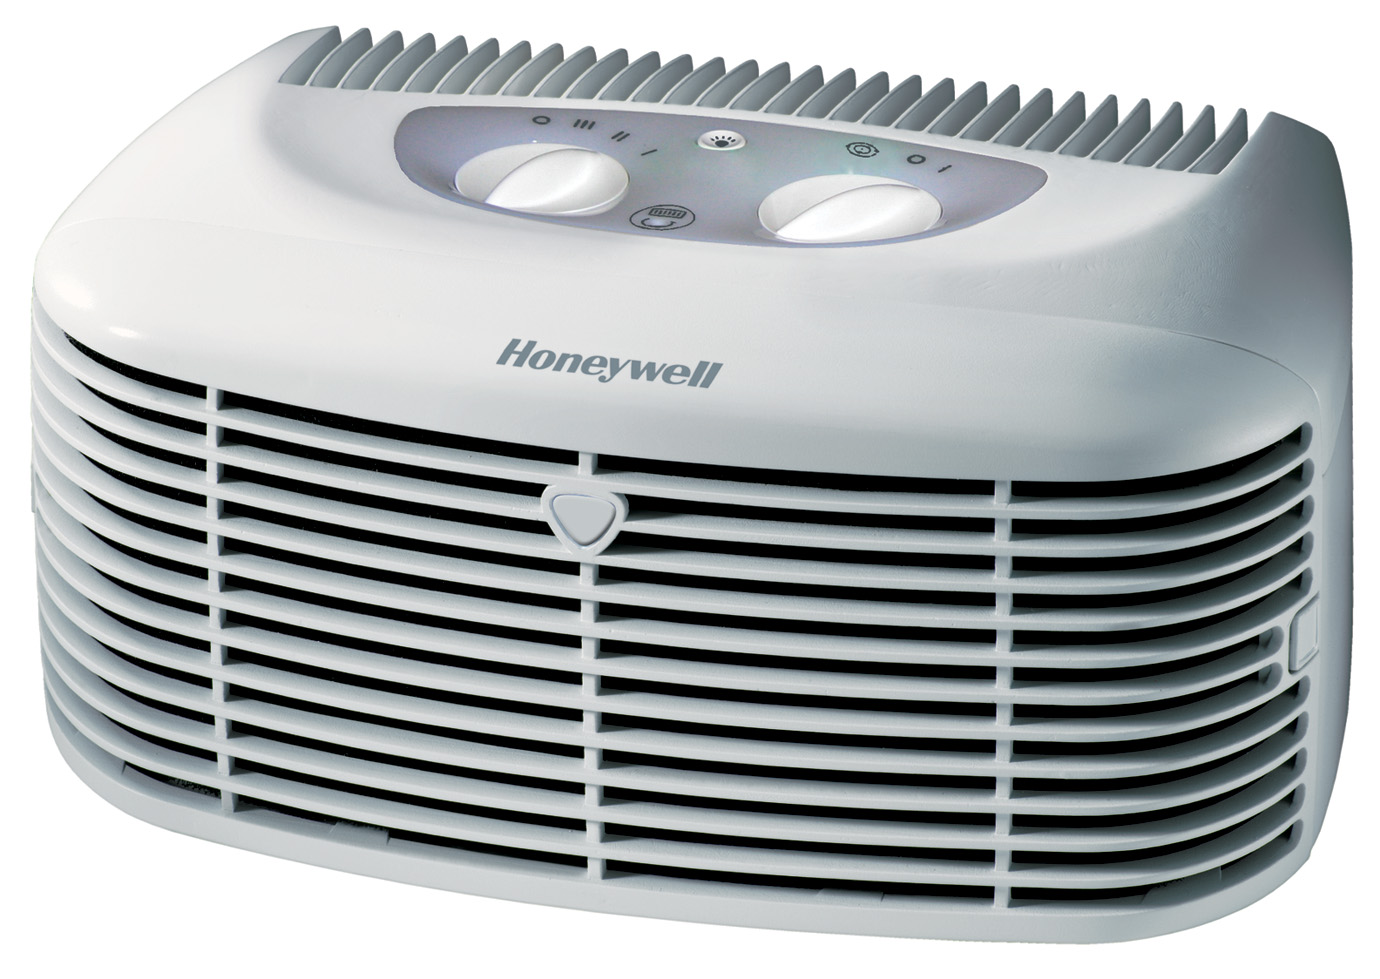 Honeywell-Compact-Air-Purifier-with-Permanent-HEPA-Filter